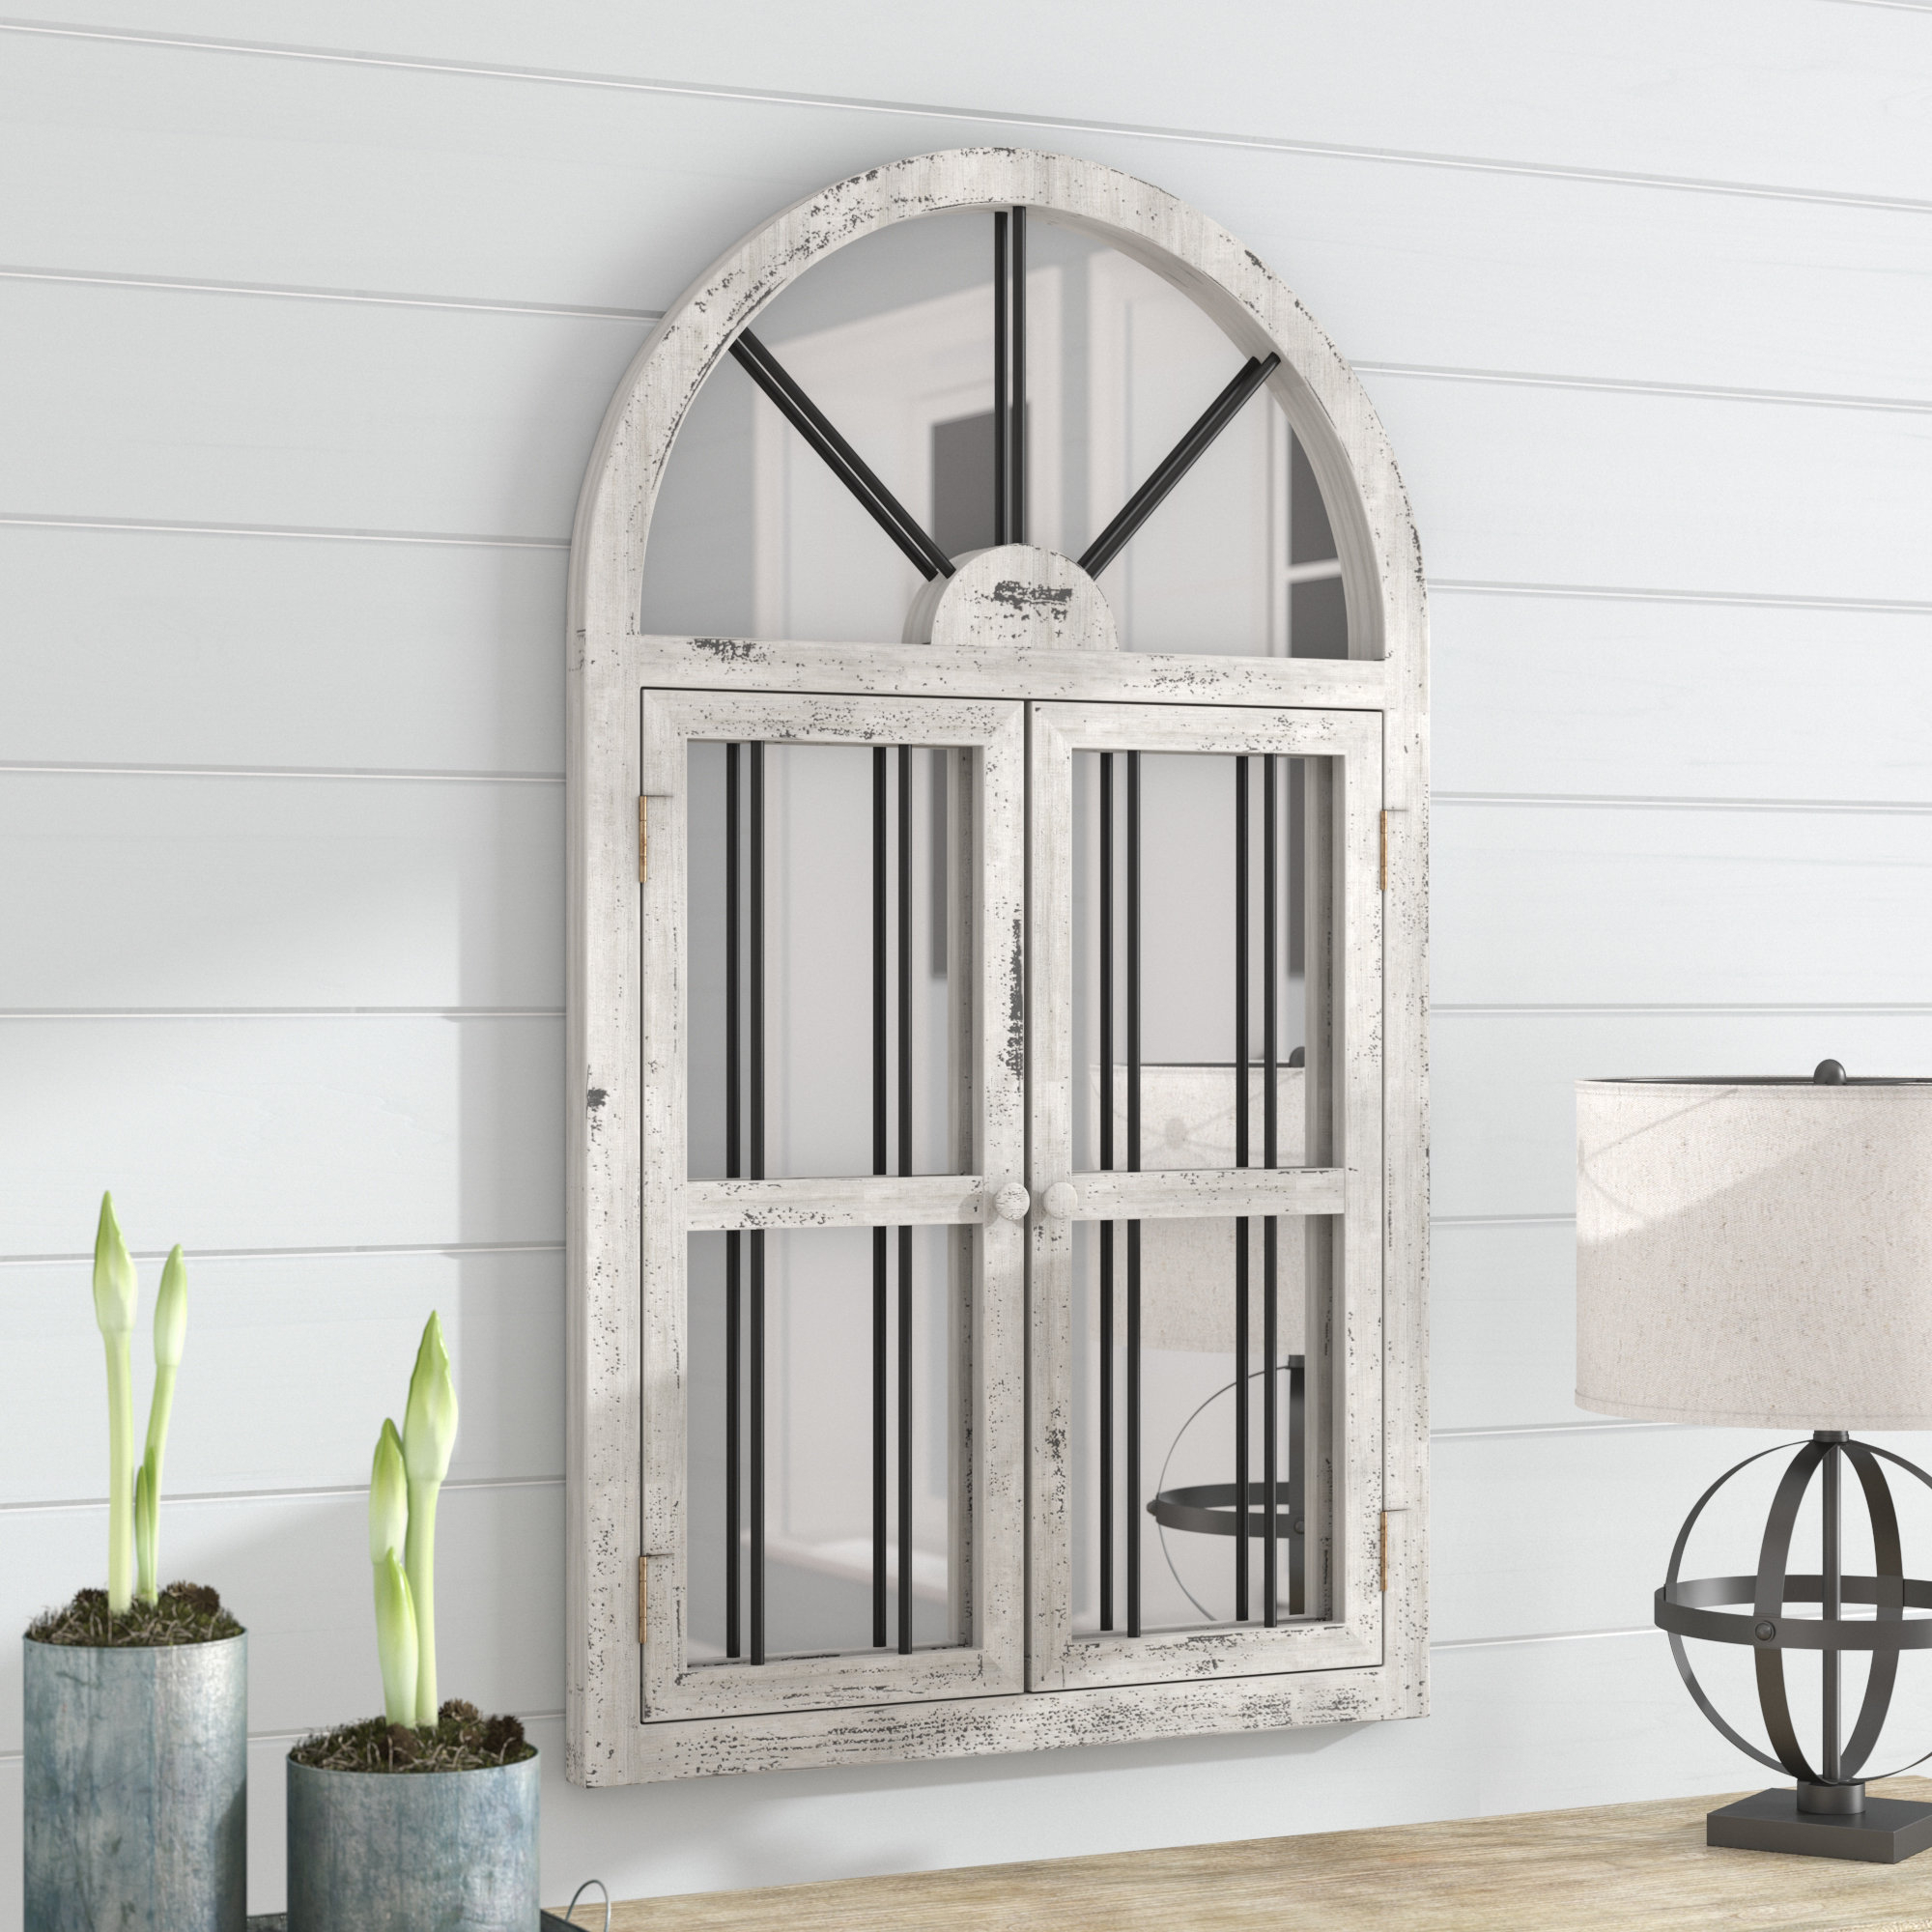 Faux Window Wood Wall Mirror Pertaining To Current 2 Piece Kissena Window Pane Accent Mirror Sets (View 11 of 20)